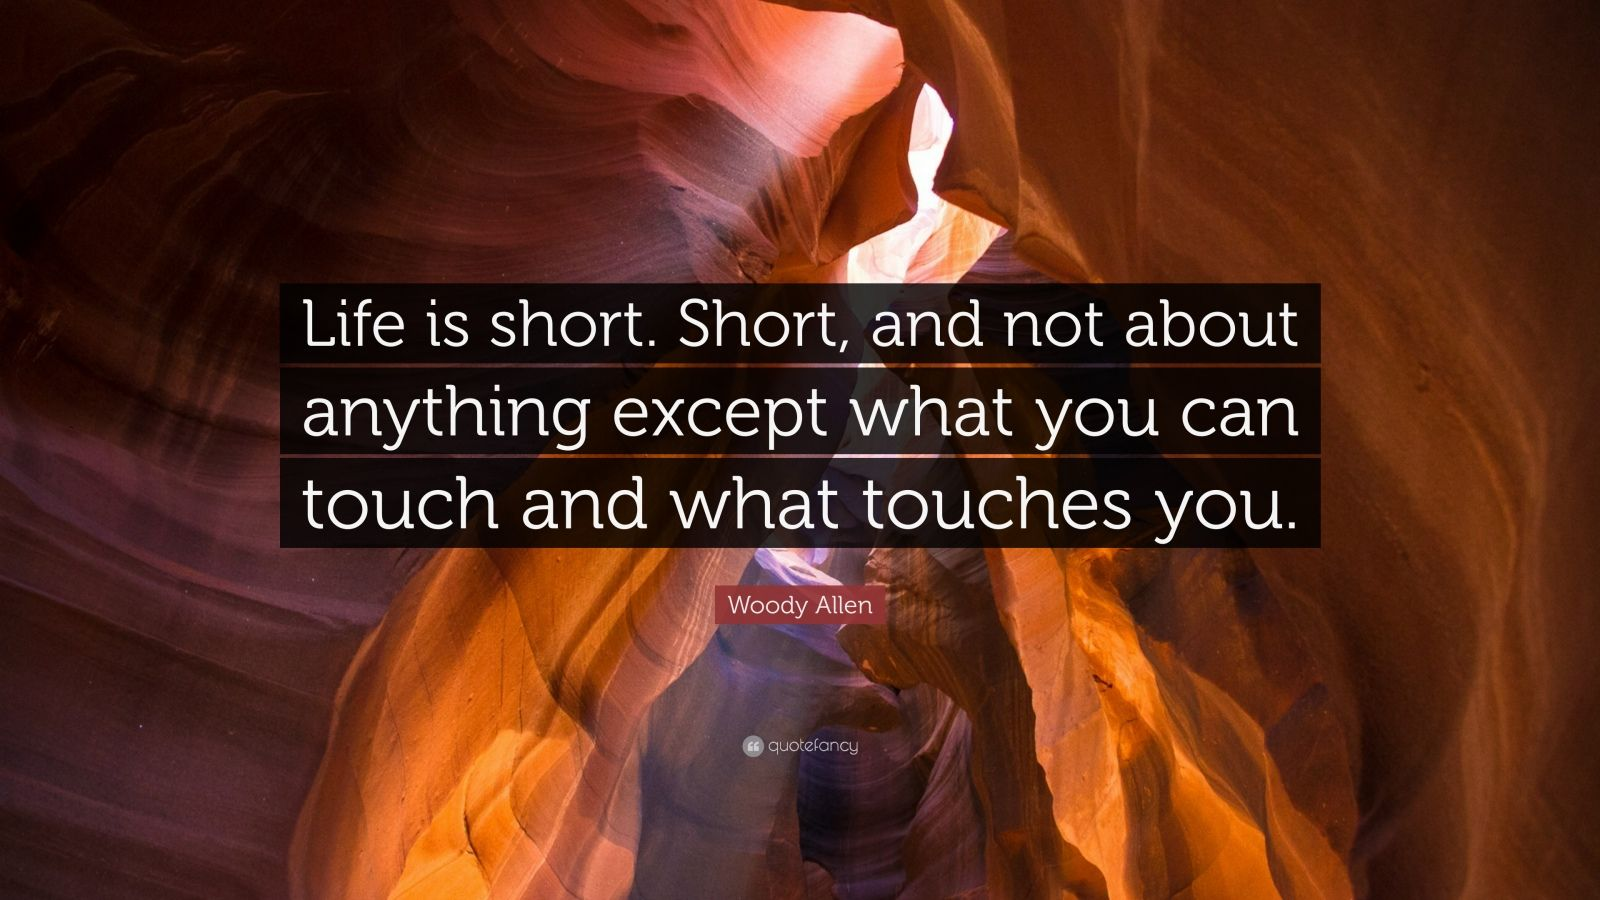 """Woody Allen Quote: """"Life is short. Short, and not about anything except what you can touch and what touches you."""""""